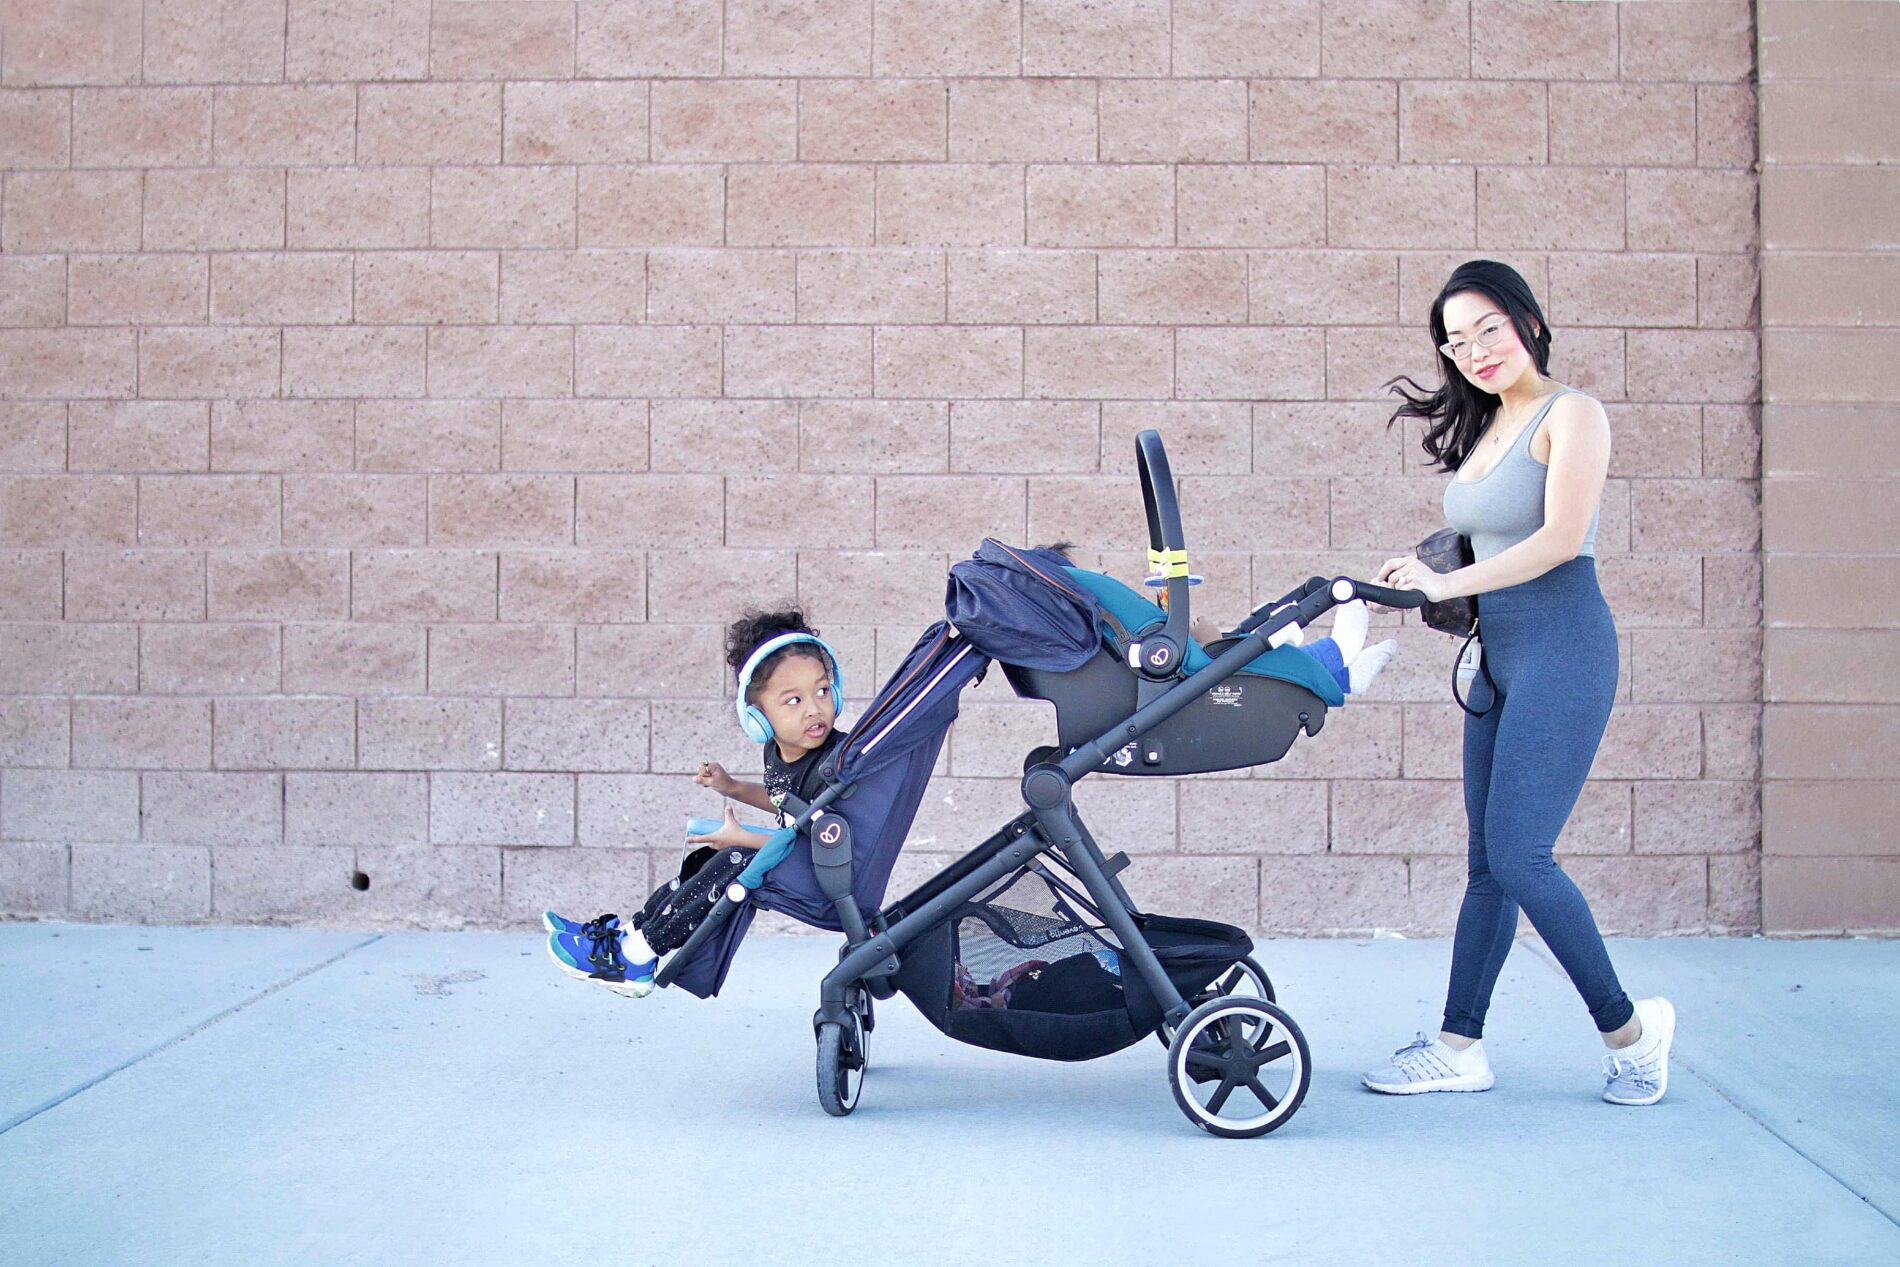 running jogging workout with kids